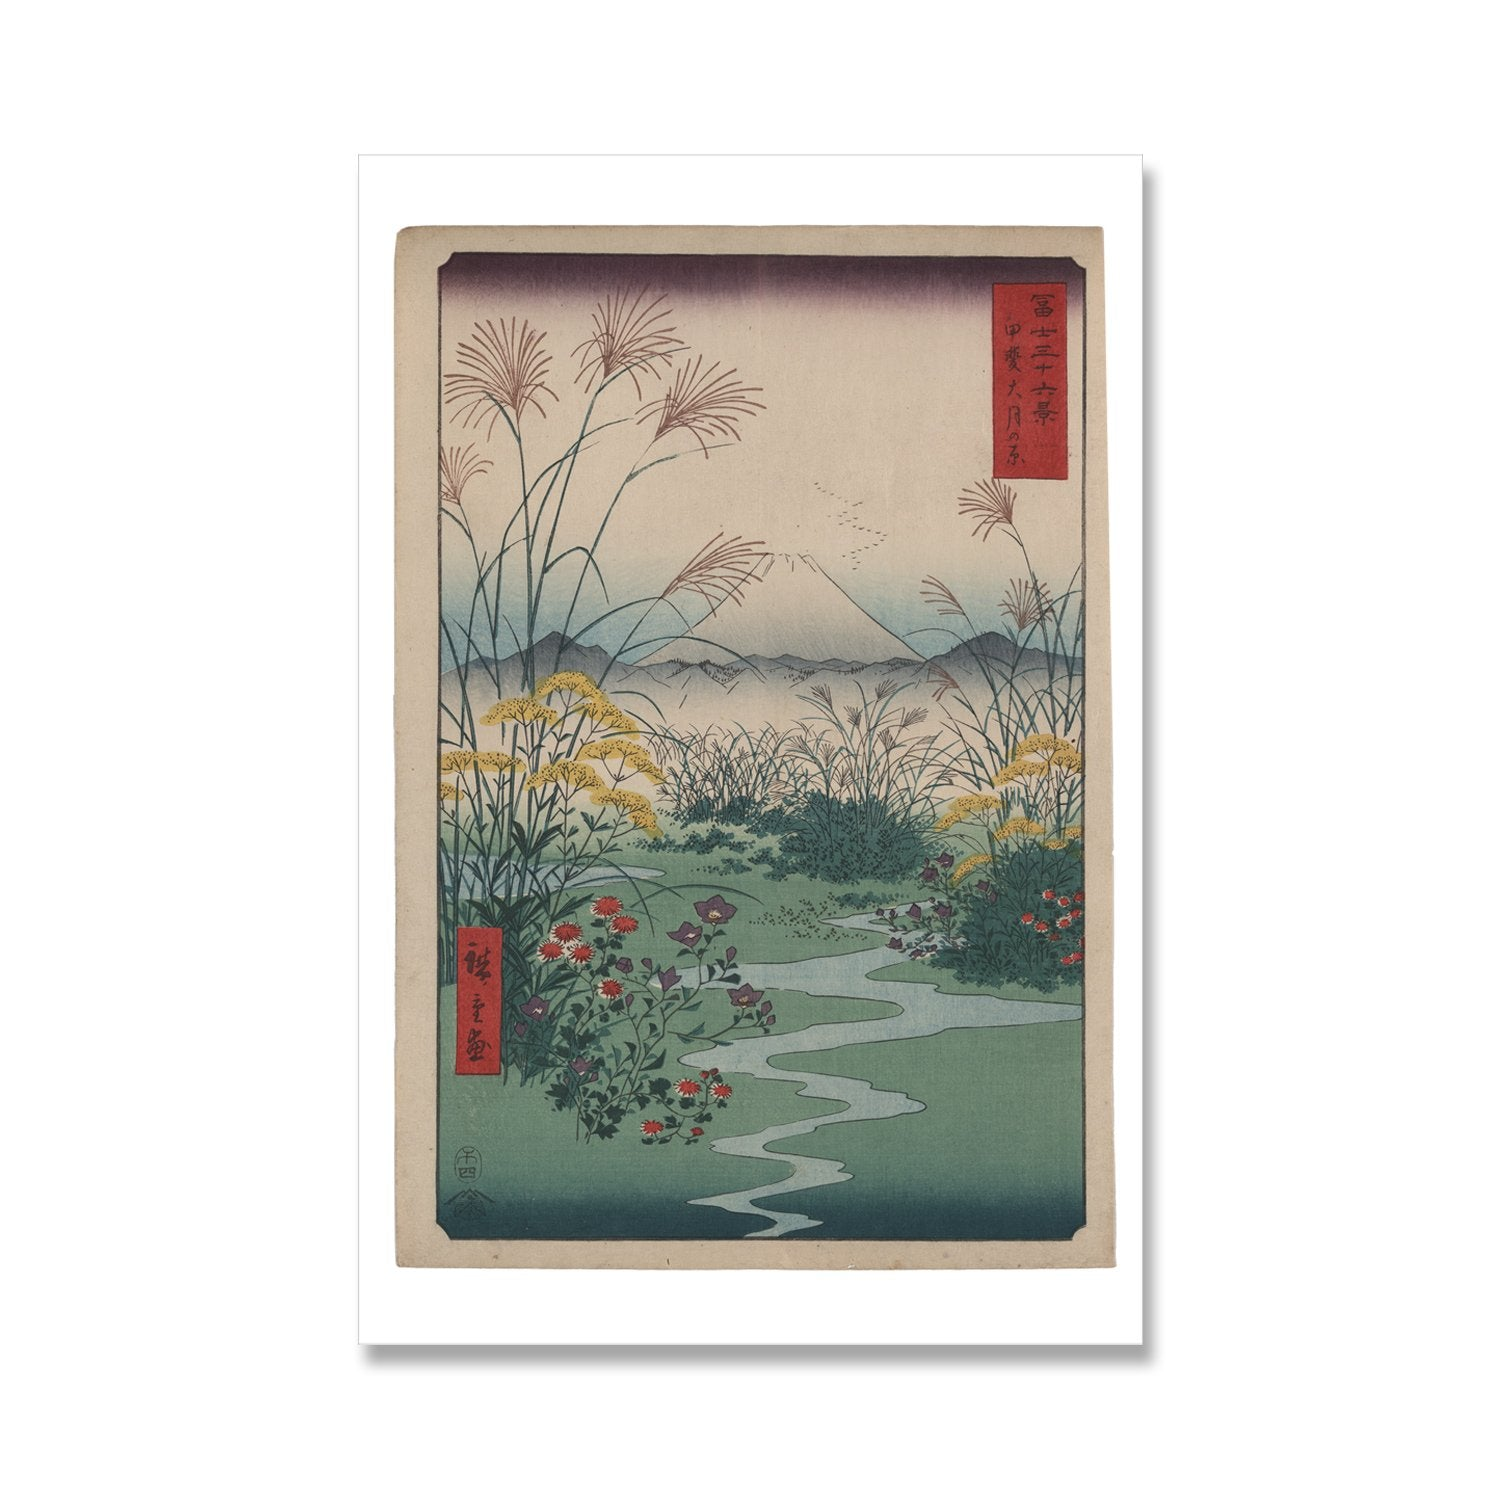 japanese mountain and wildflowers print by ando hiroshige